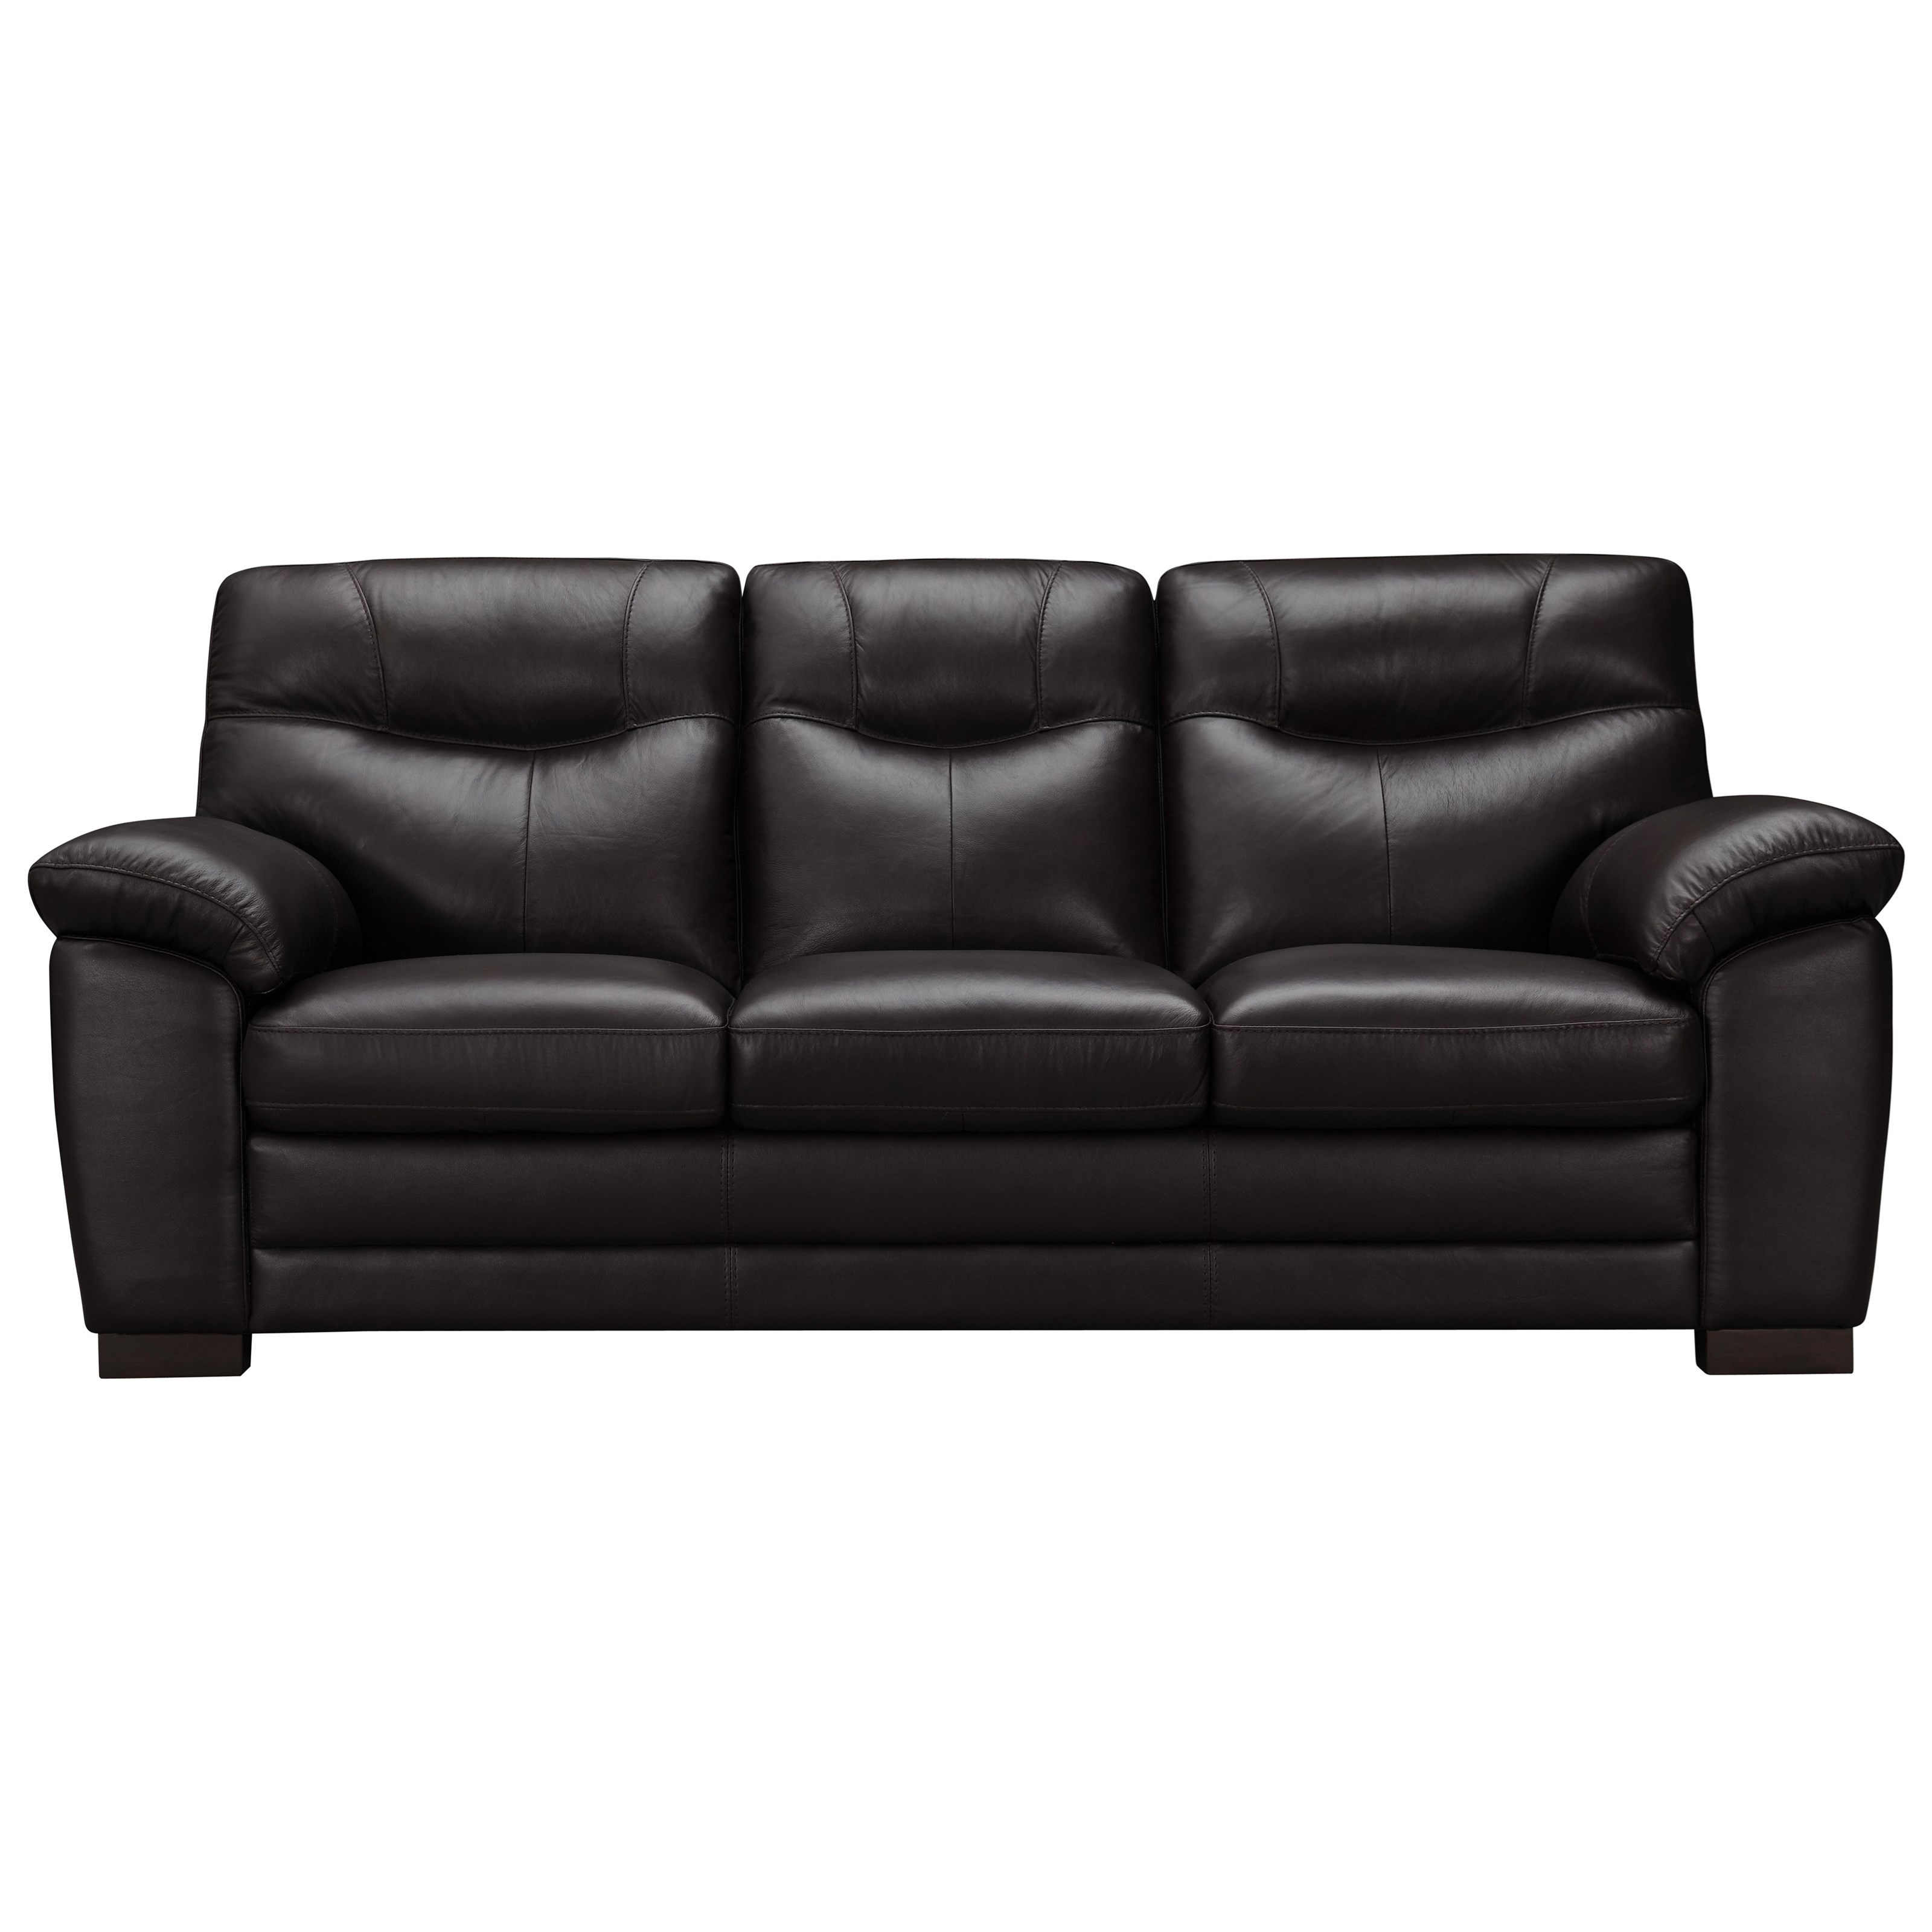 31852 Sofa by Violino at Furniture Superstore - Rochester, MN